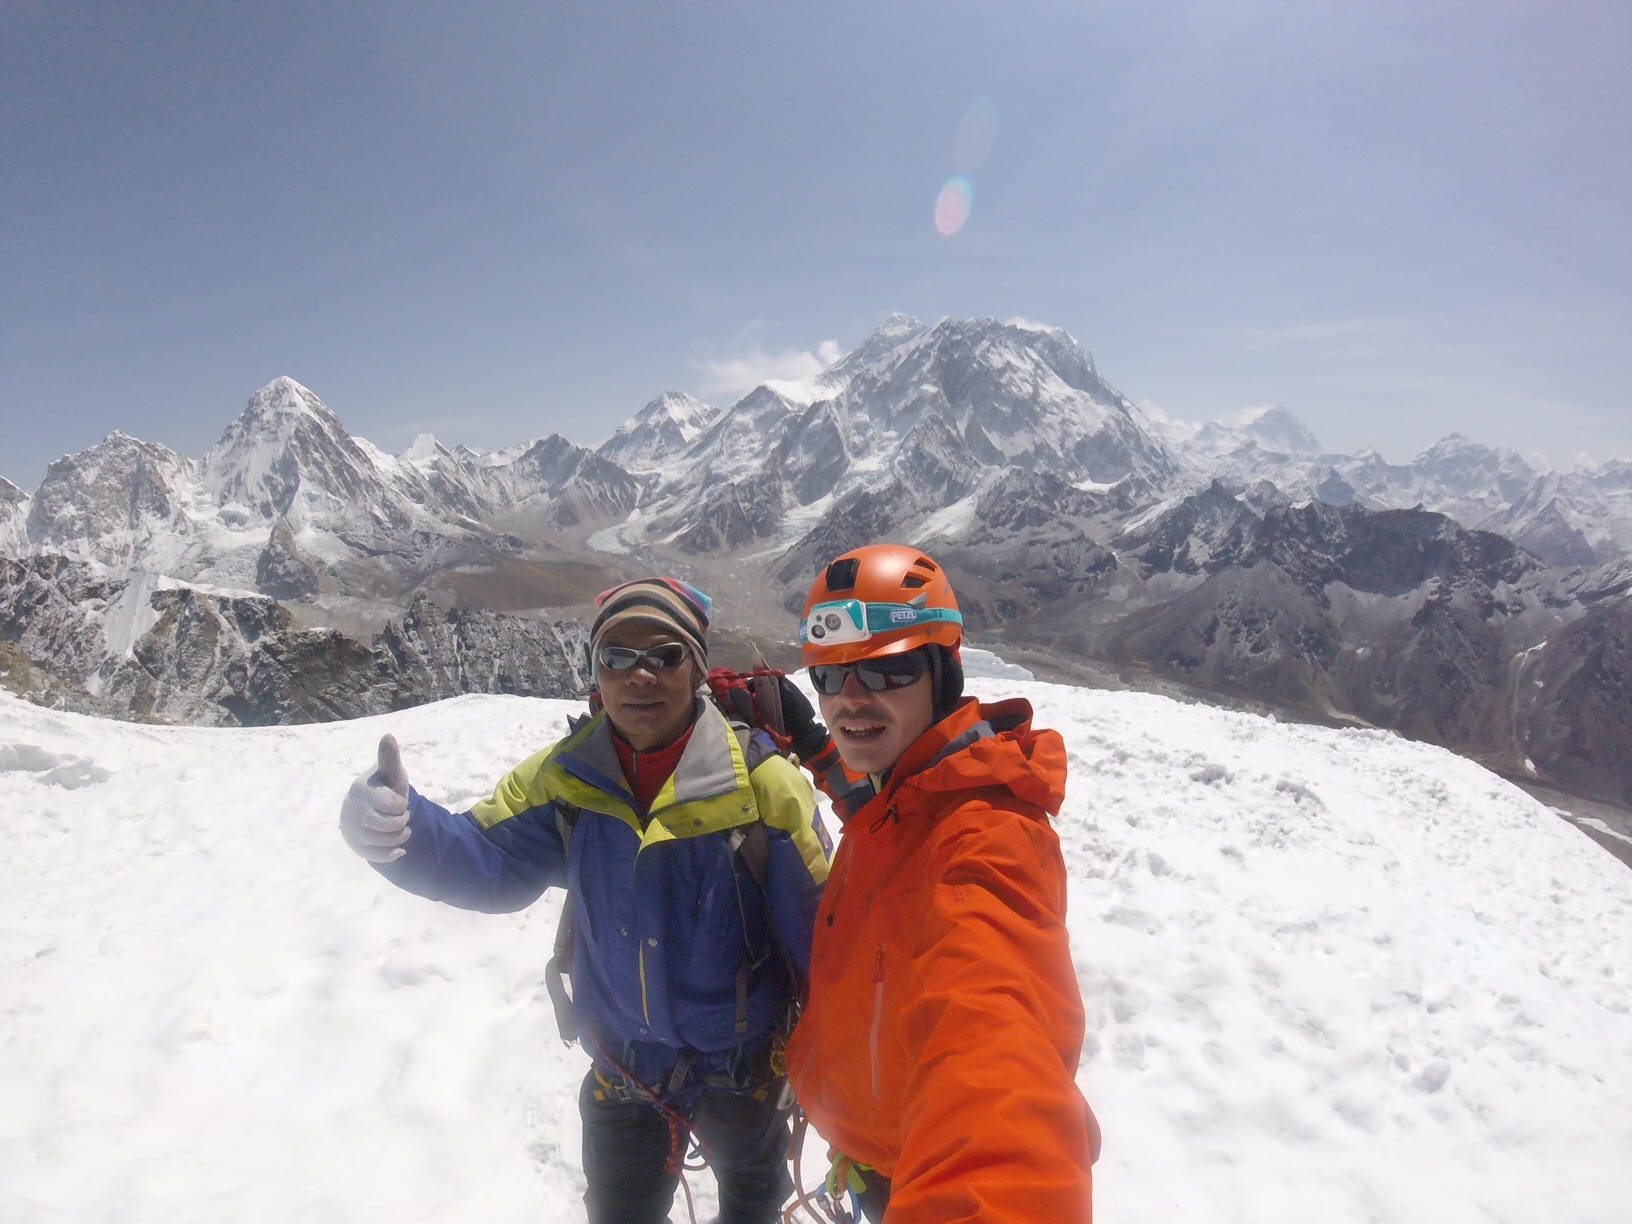 Phurba Karma Sherpa guide et Bertrand Mounier sommet  photo Bertrand Mounier